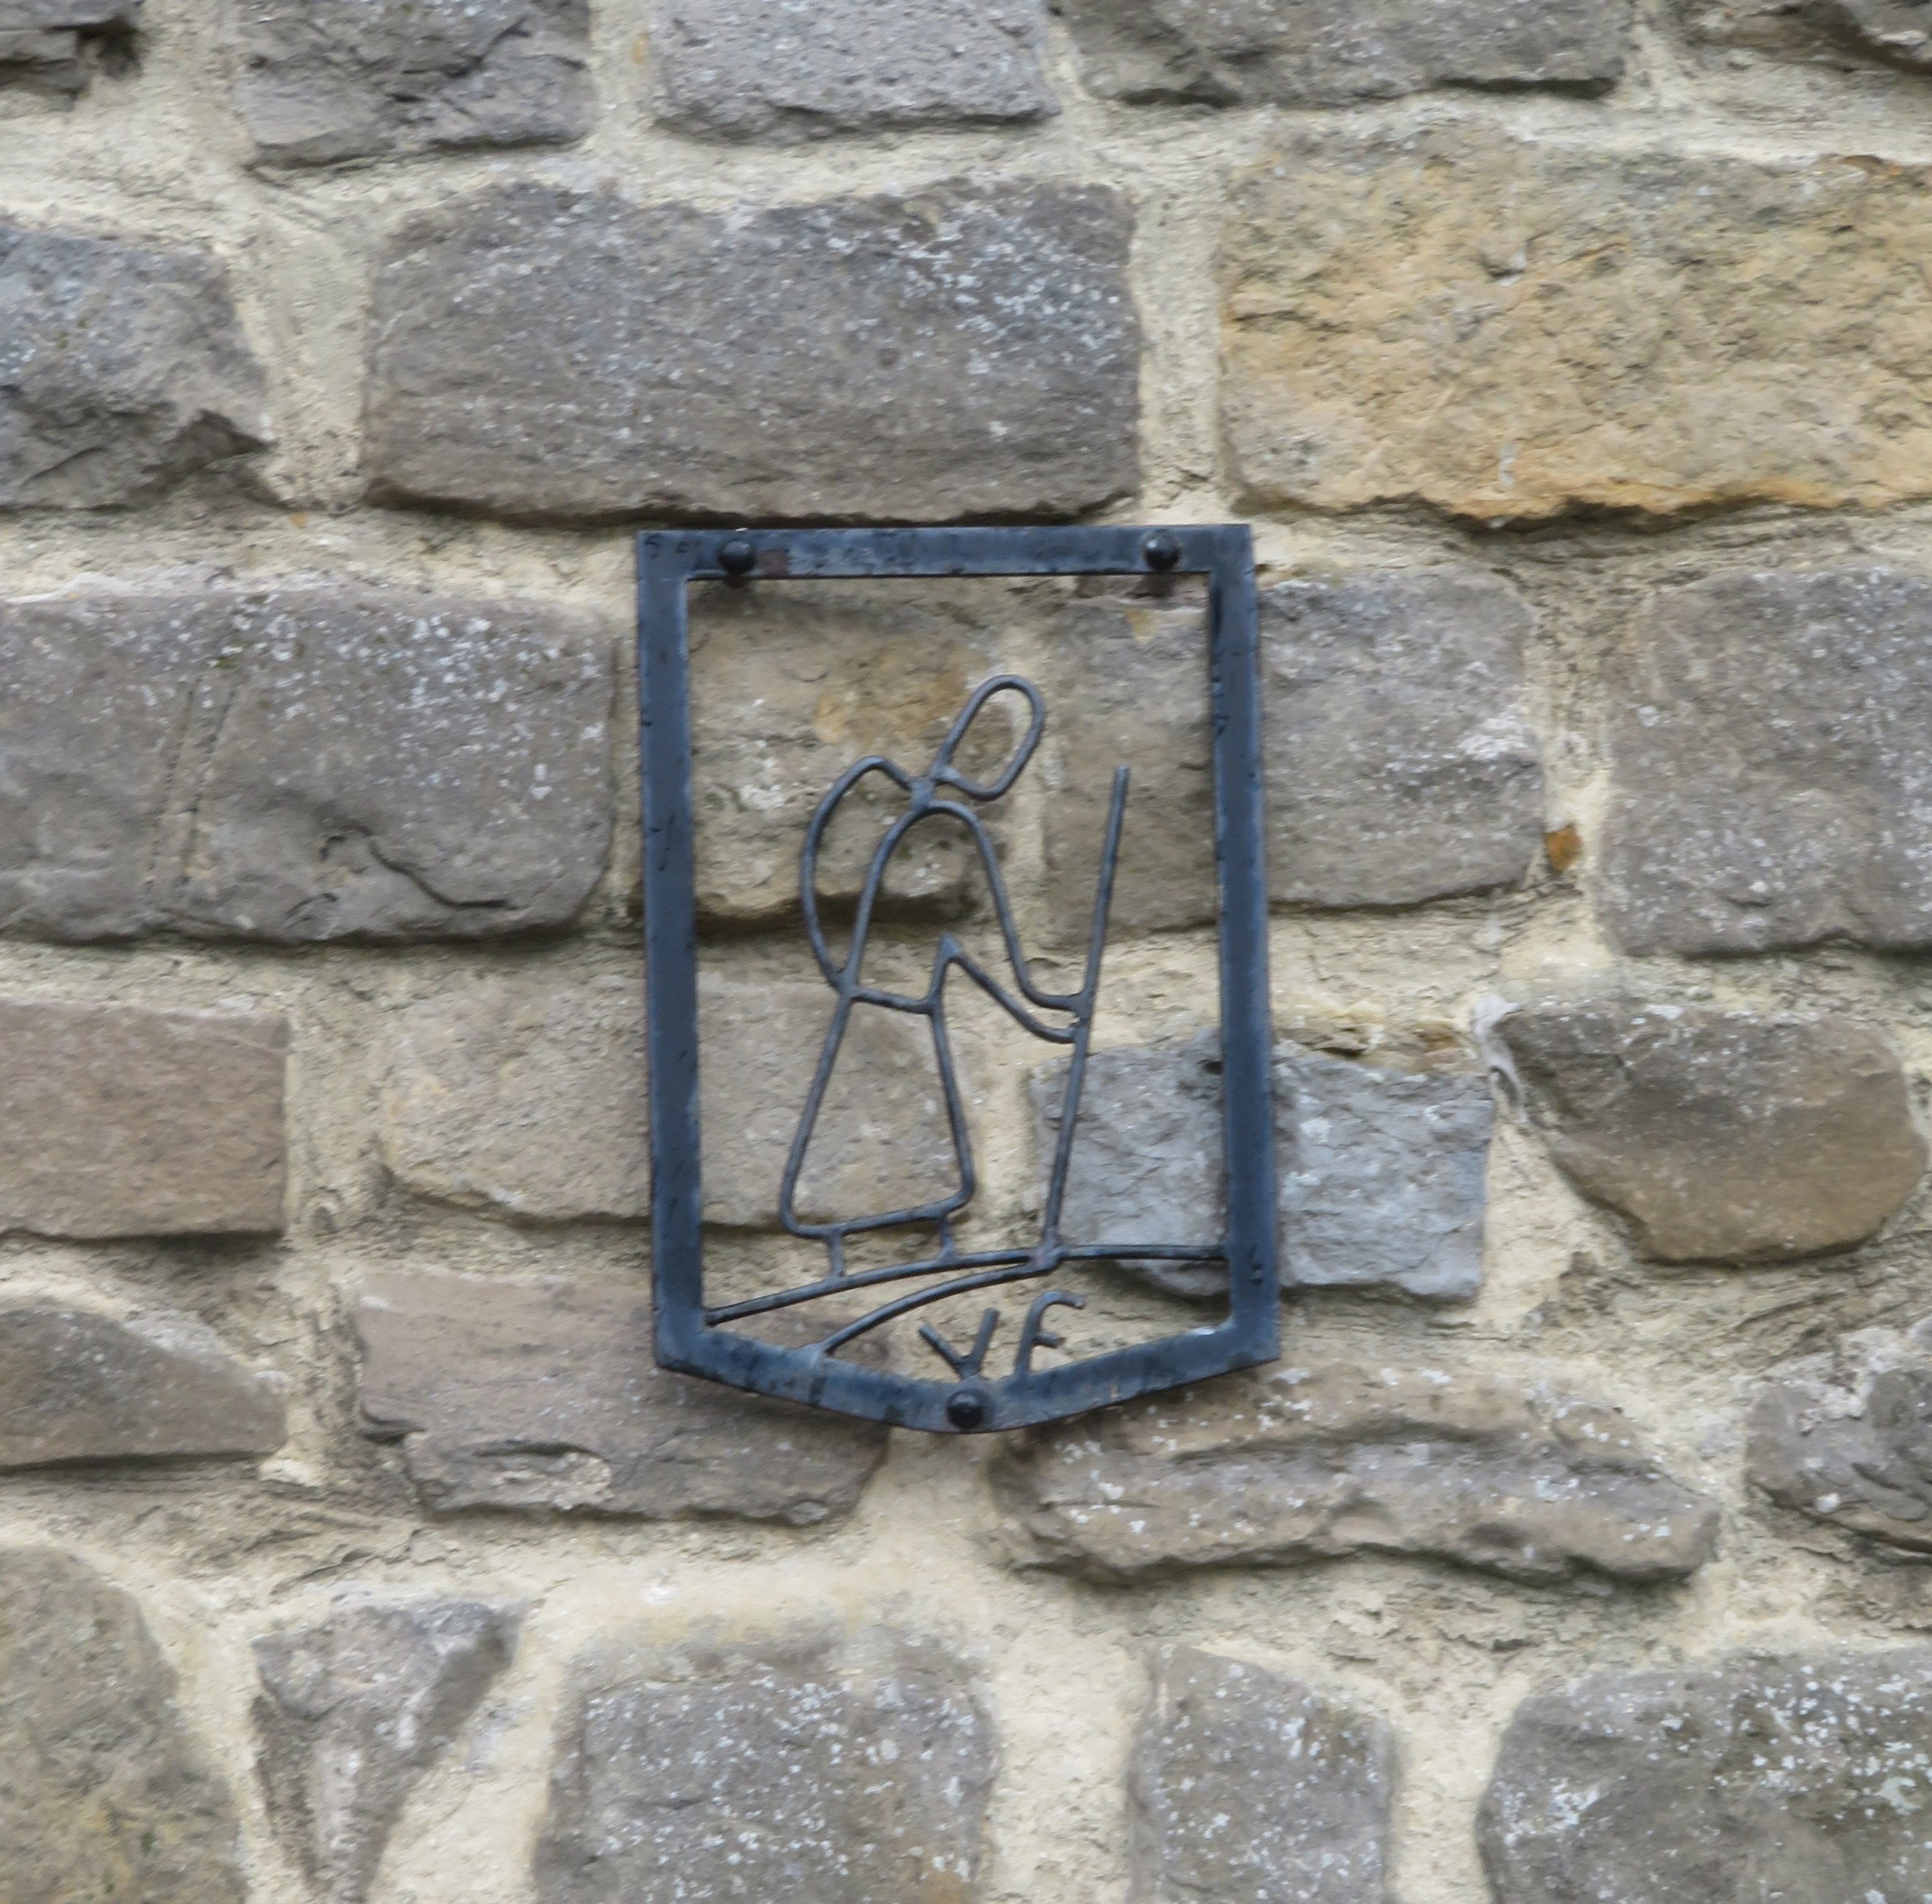 A metal symbol on the church signifies its pilgrim heritage and its centuries long connection to the Via Francigena (VF).